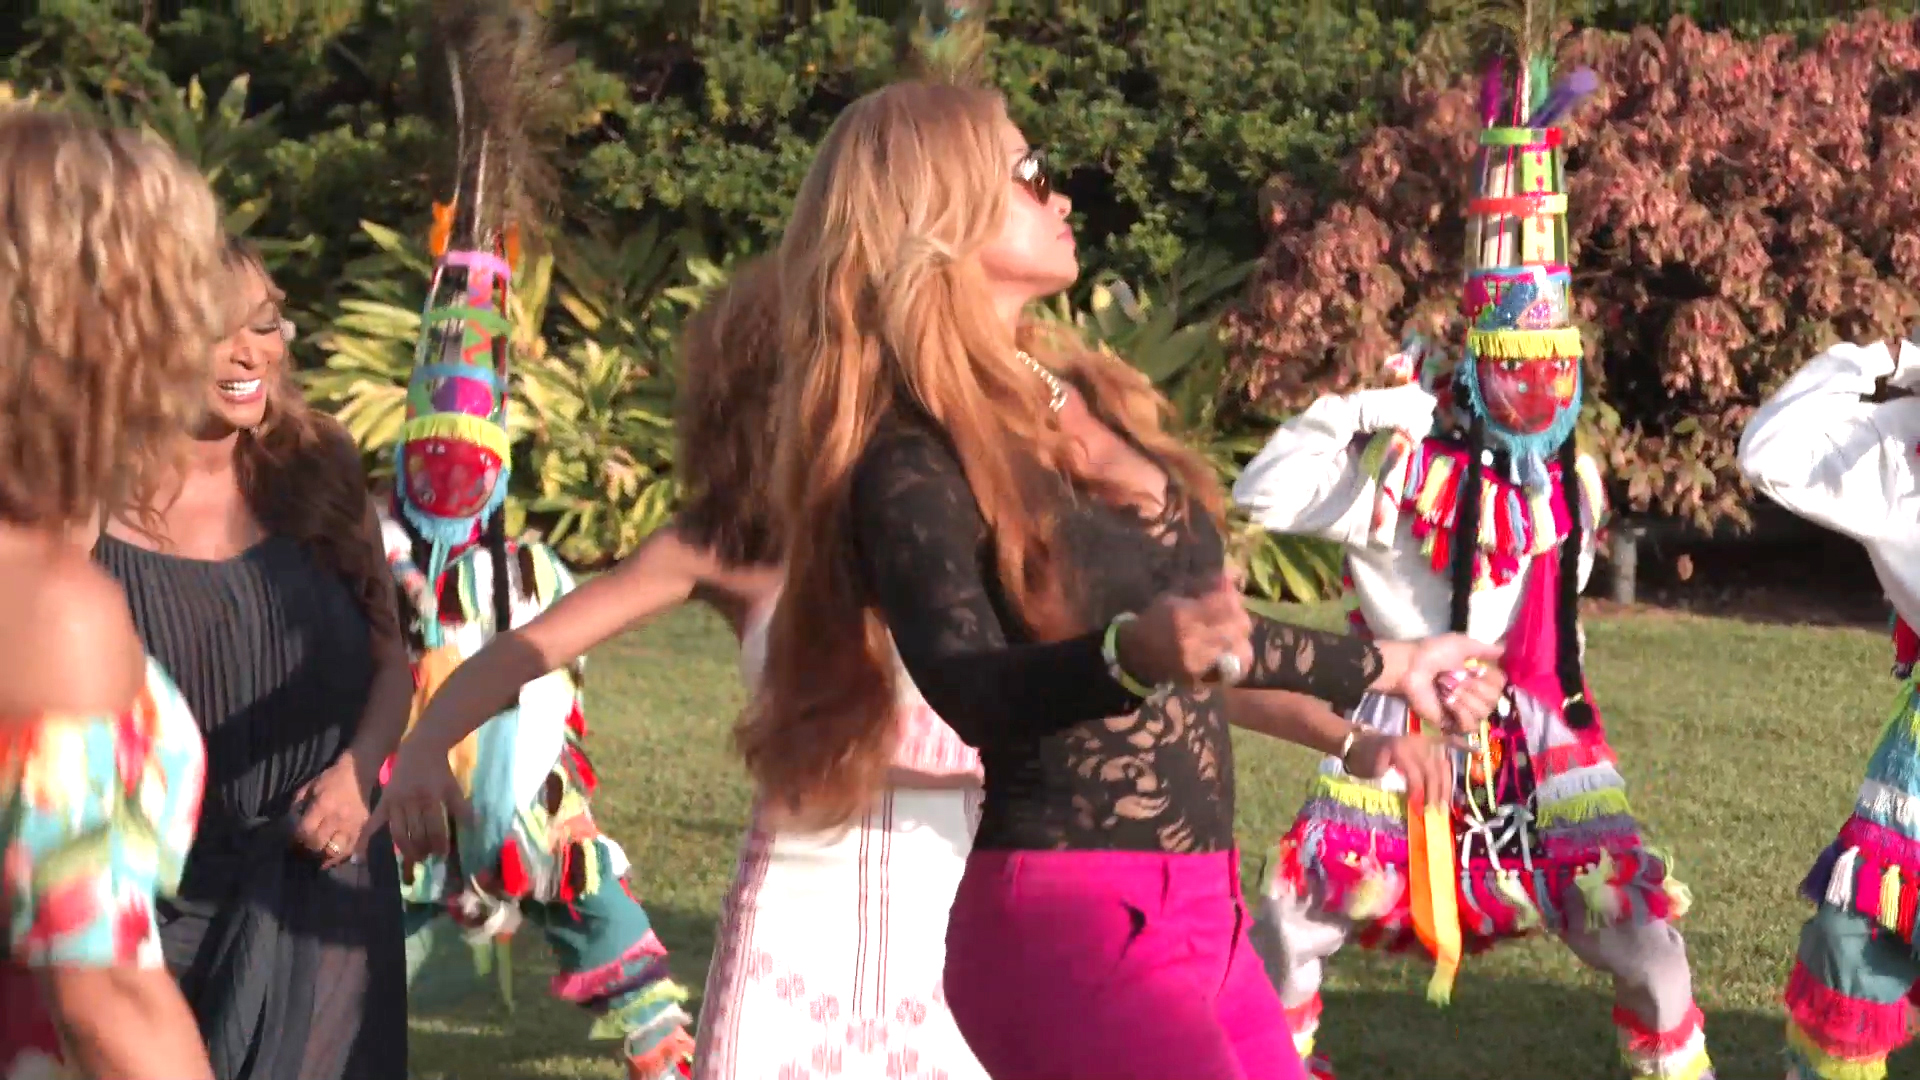 RHOP Housewives Dance With Whips in Bermuda